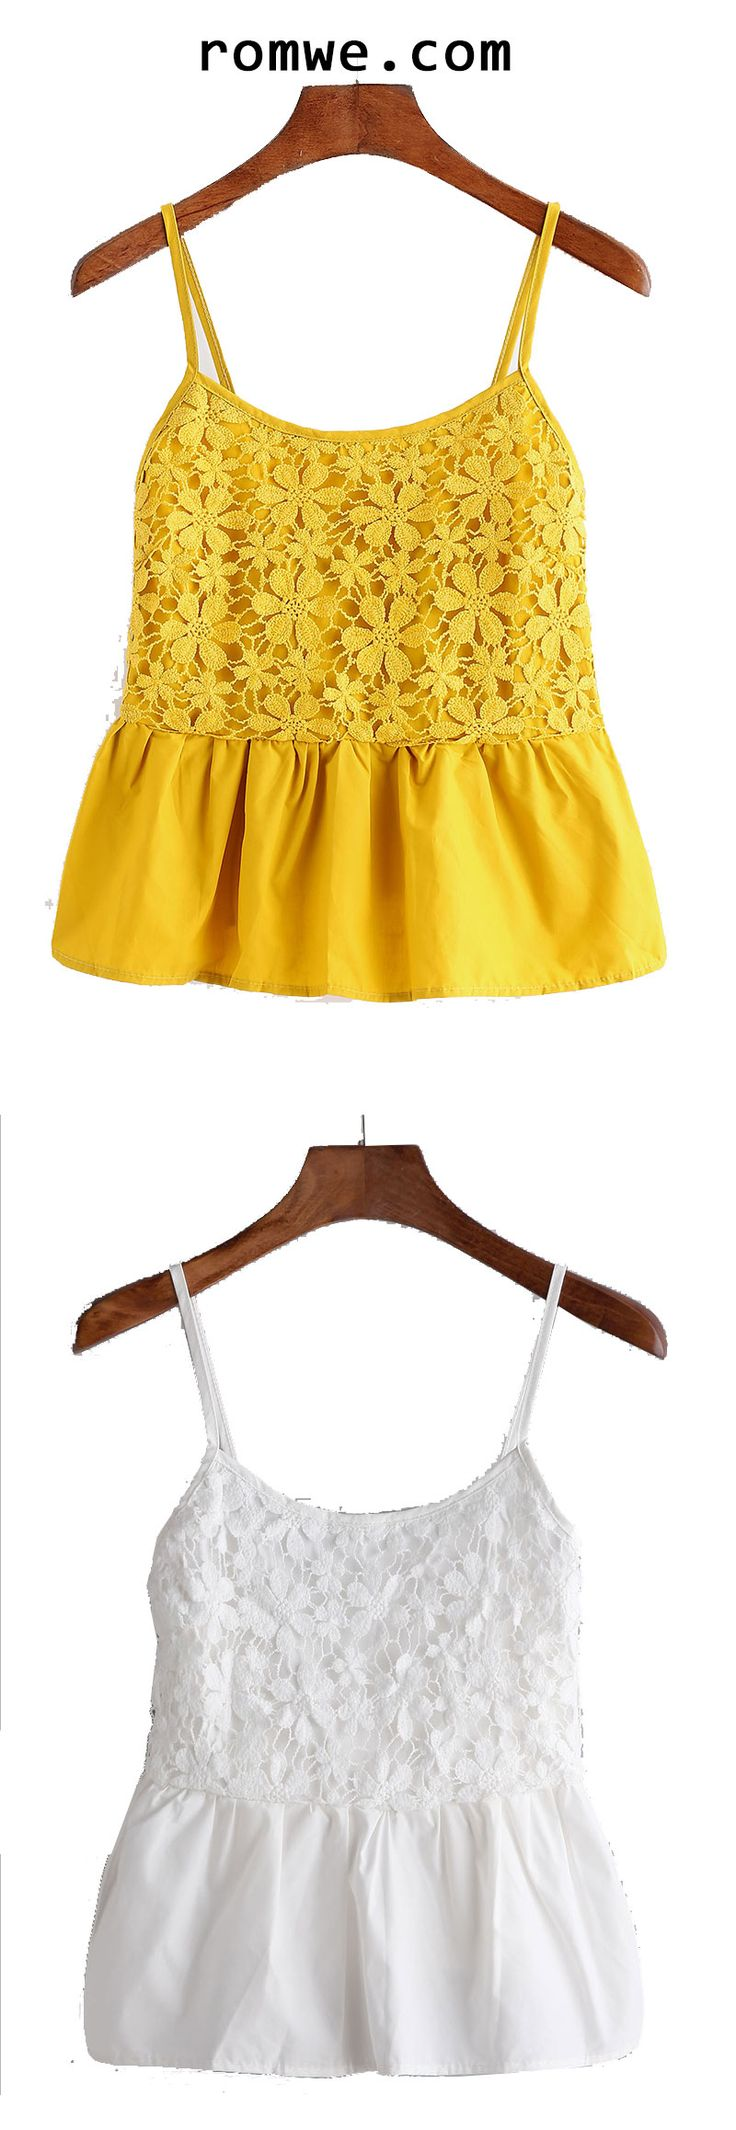 White & Yellow Lace Splicing Cami Top